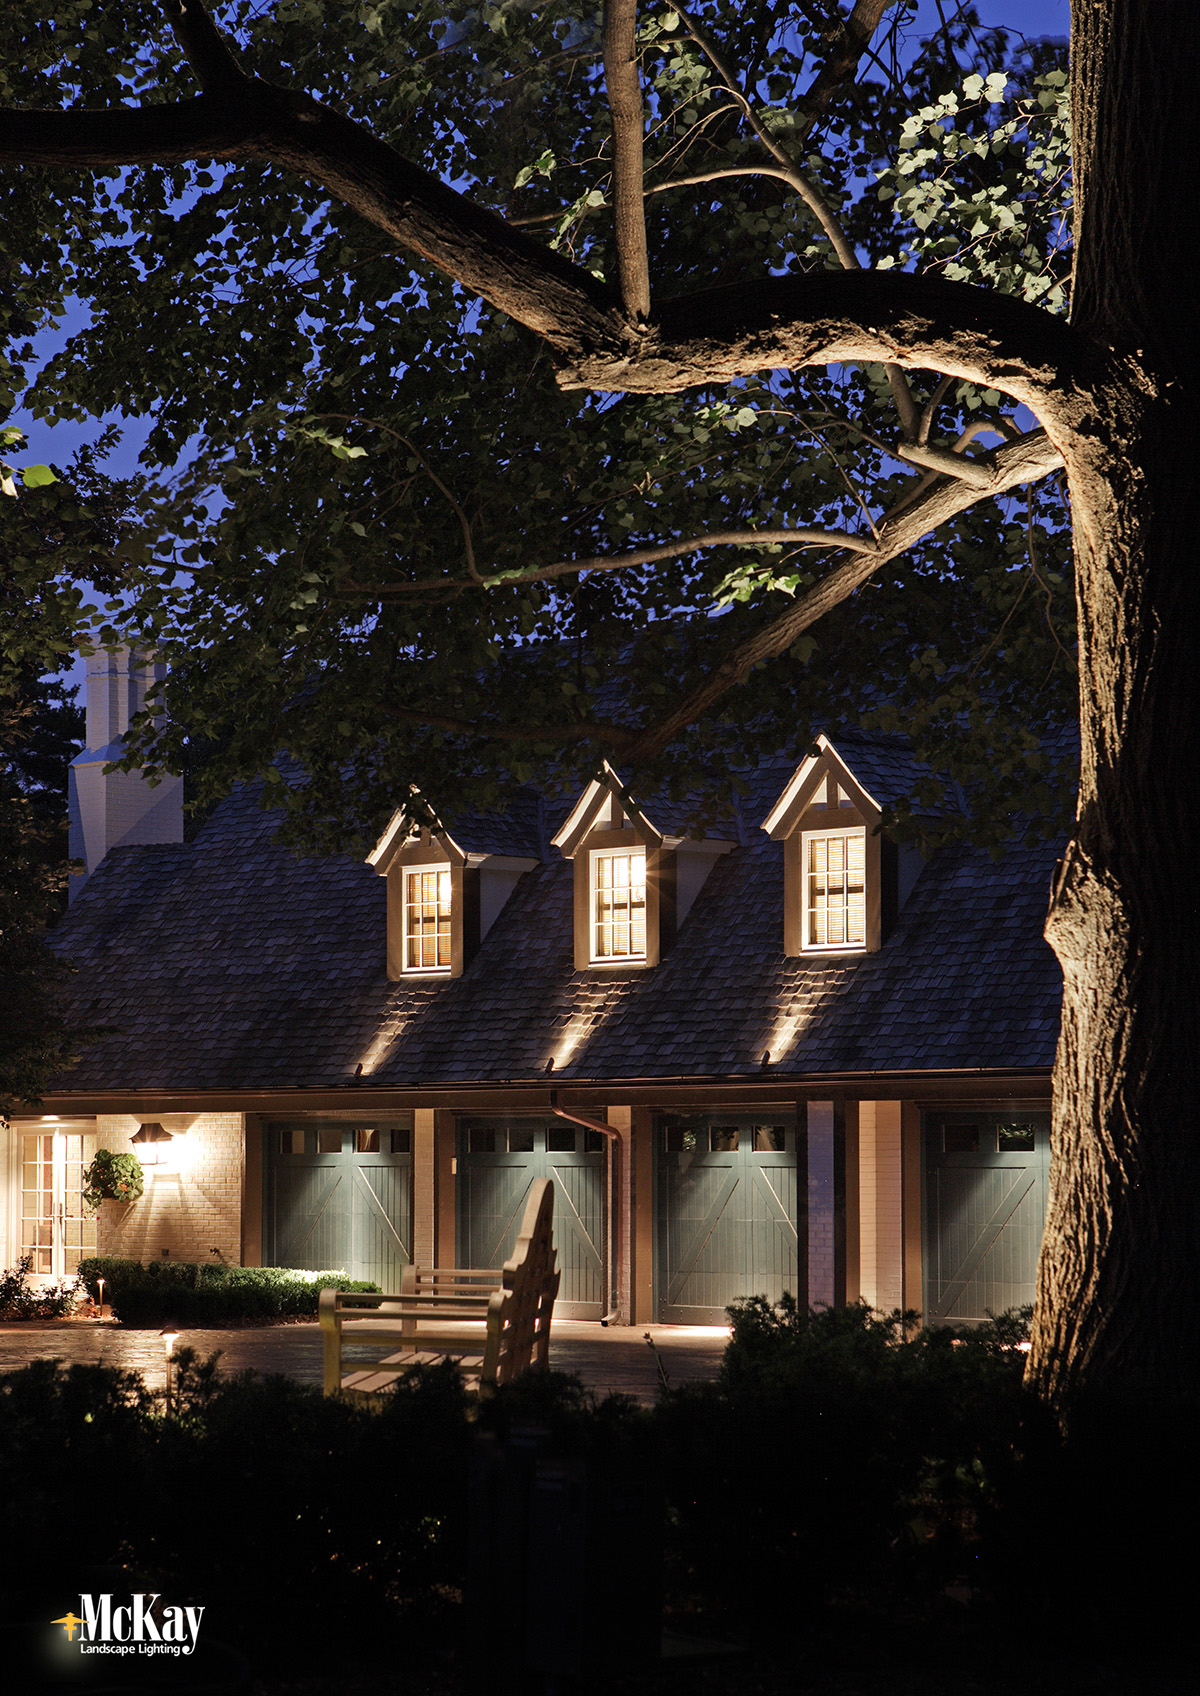 Draw Attention to Unique Features with Landscape Lighting. Find out how to dress up your garage dormers and more.... | McKay Landscape Lighting - Omaha, Nebraska